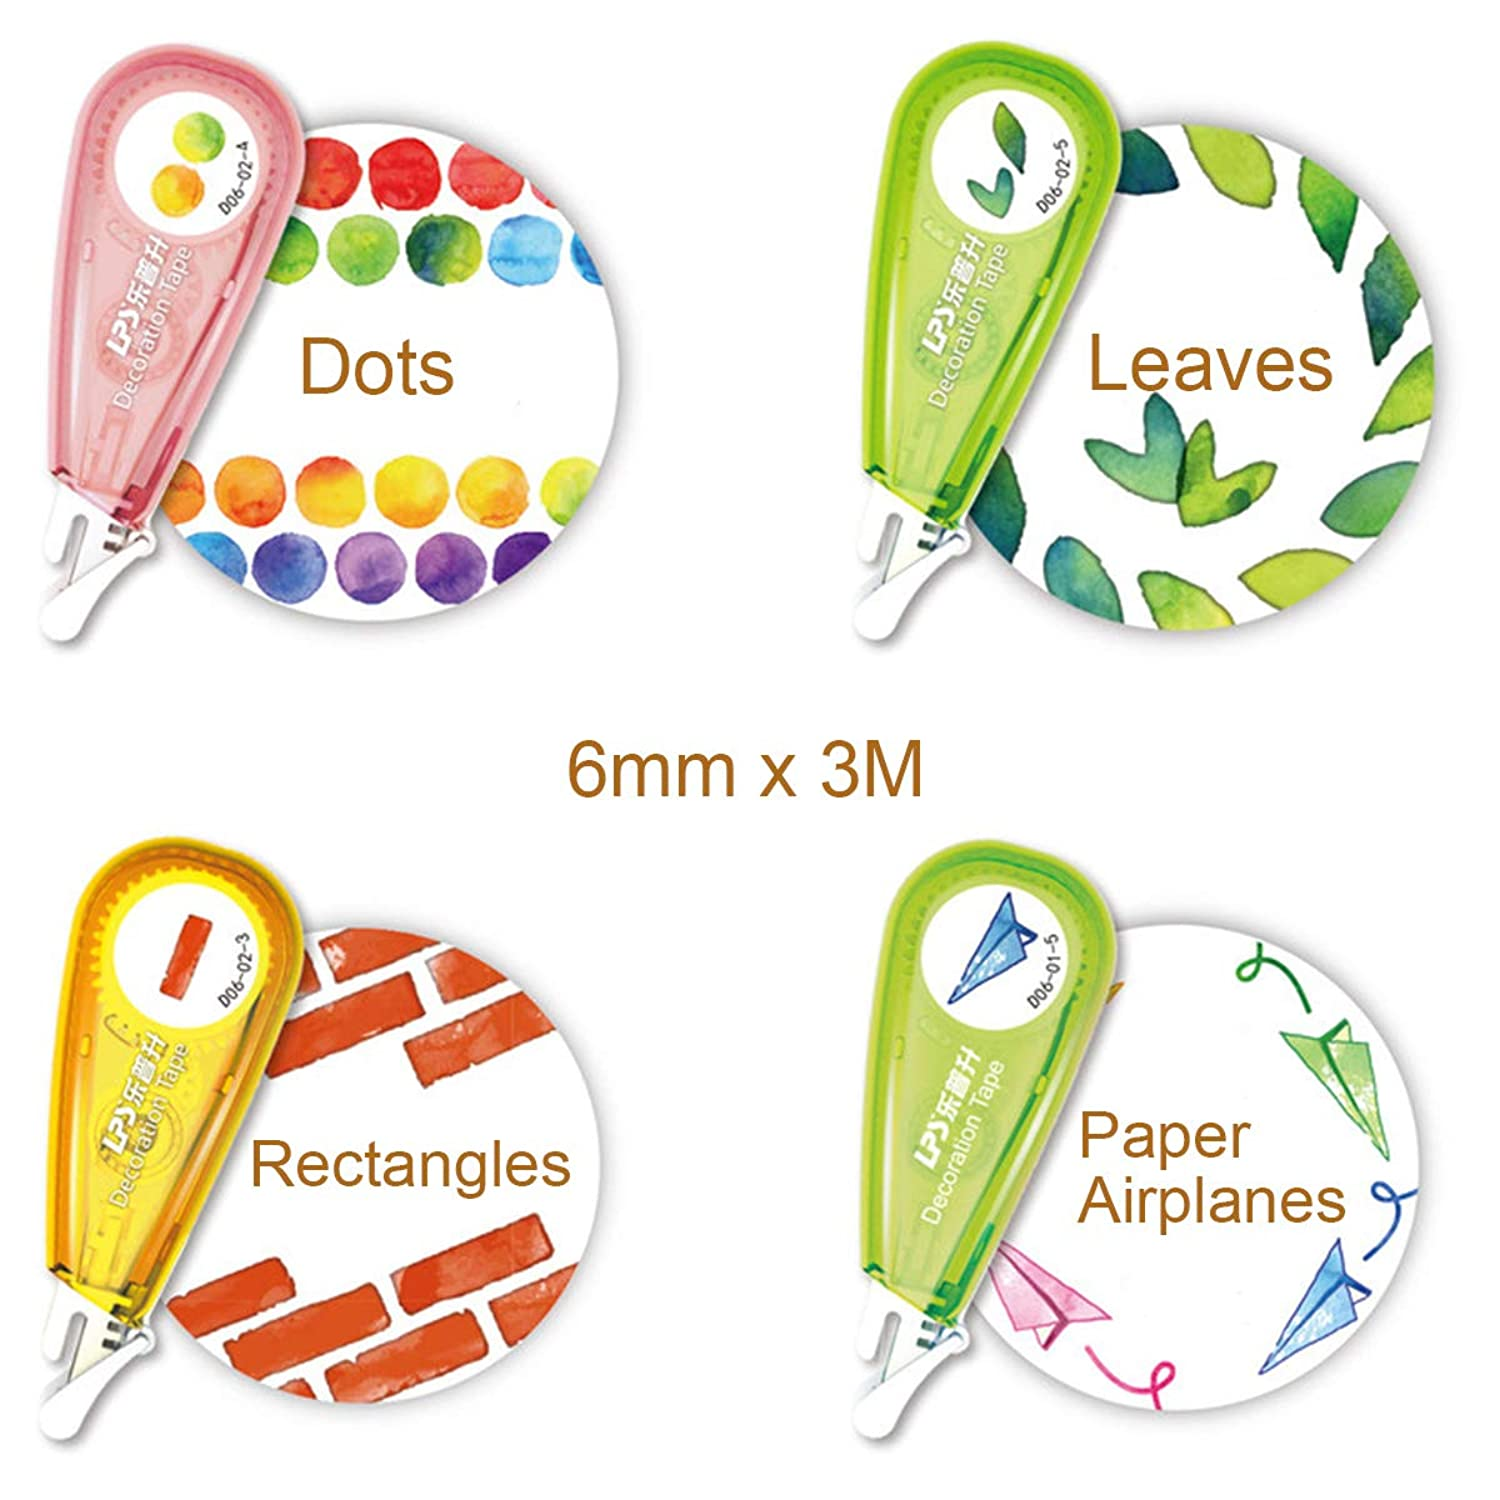 Allydrew 71716c Novelty, Decorative DIY Stationery Supplies for Home Office School, Shapes Sticker Machine Pens,